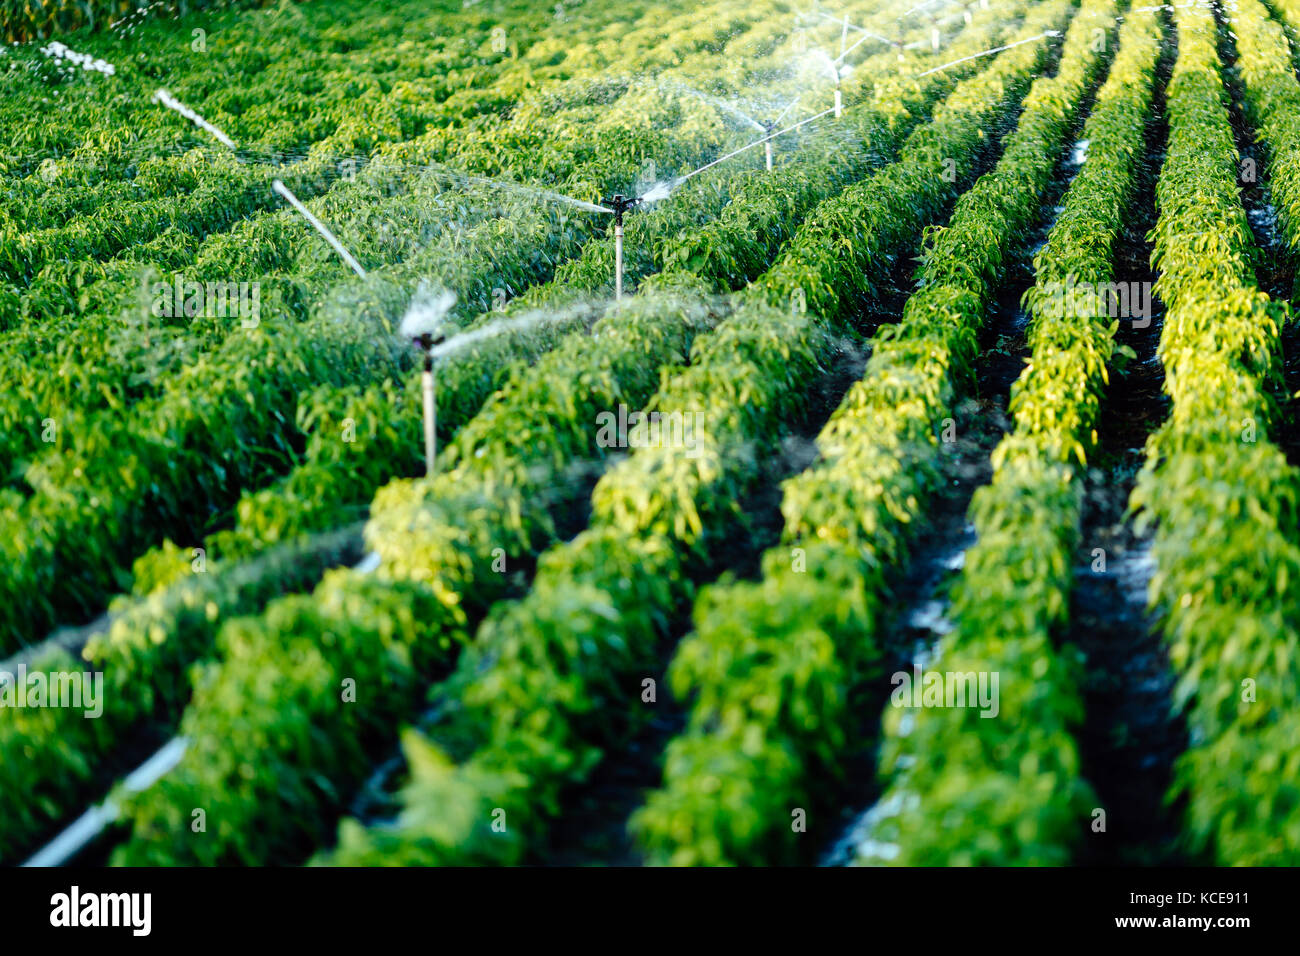 Drip irrigation images